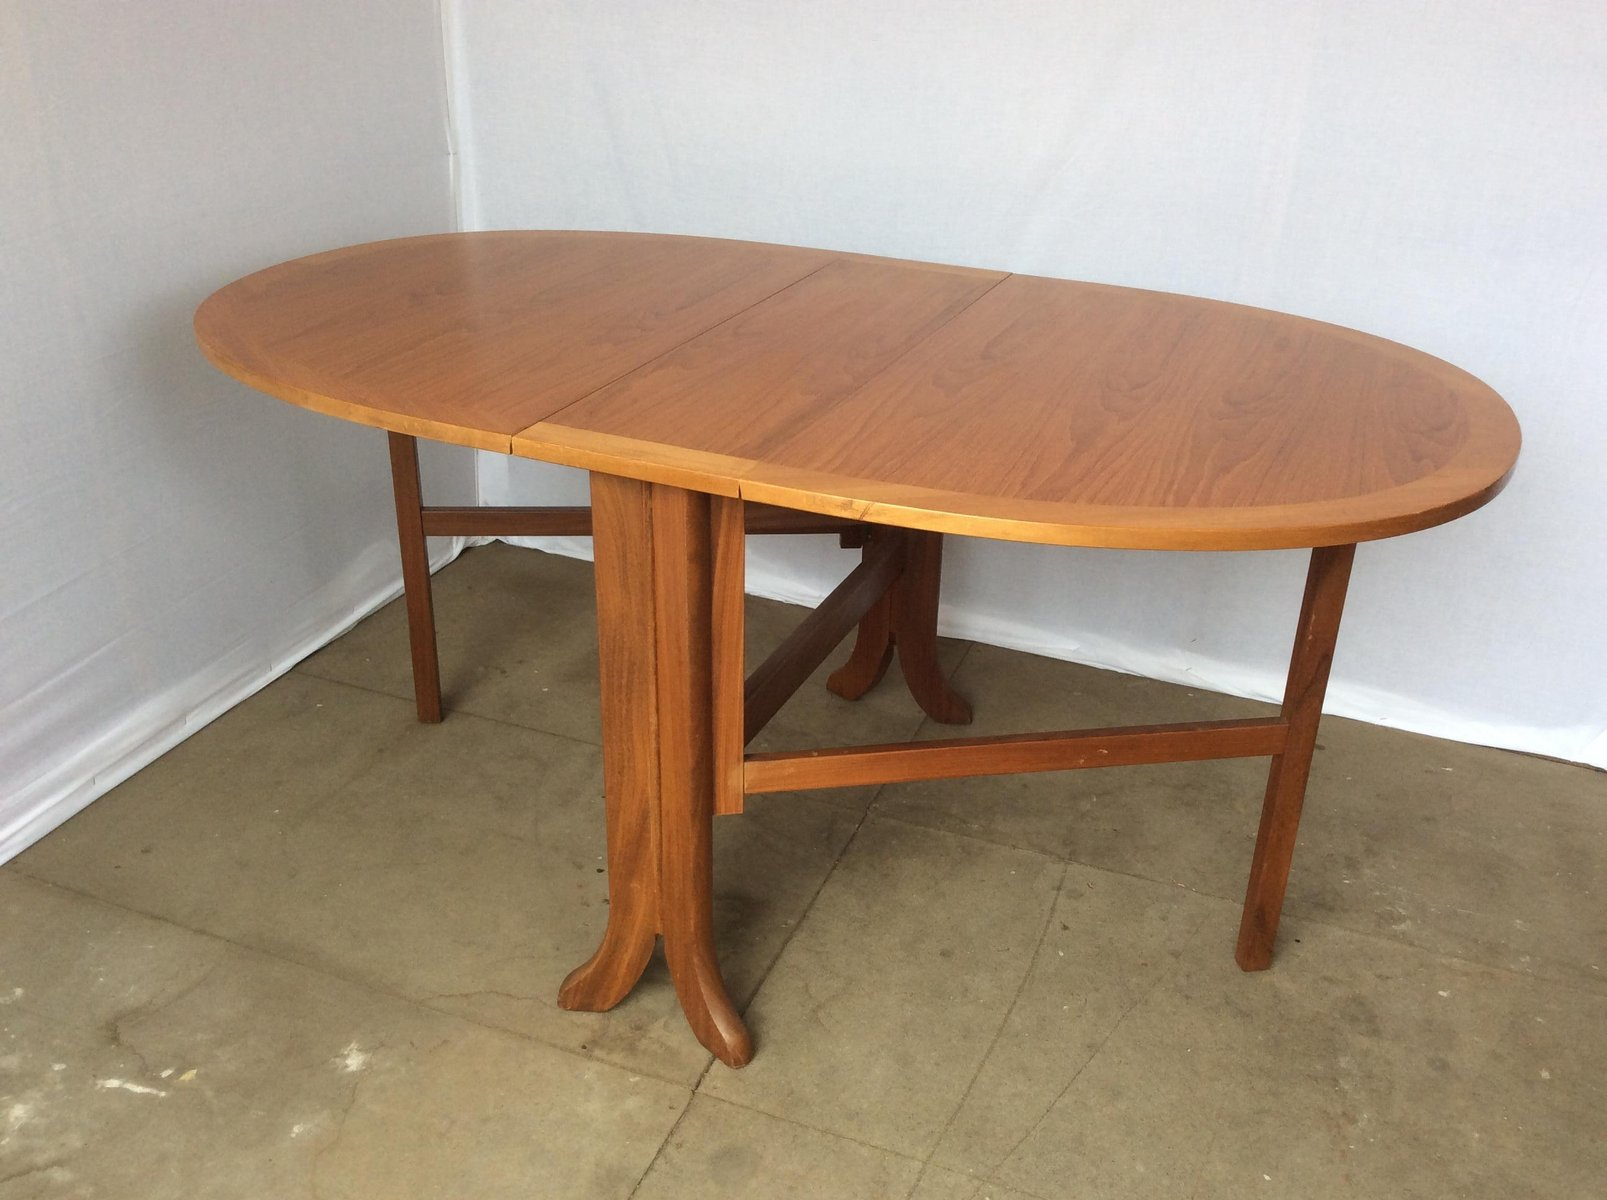 Mid Century Oval Fold Up Teak Dining Table from Nathan for sale at